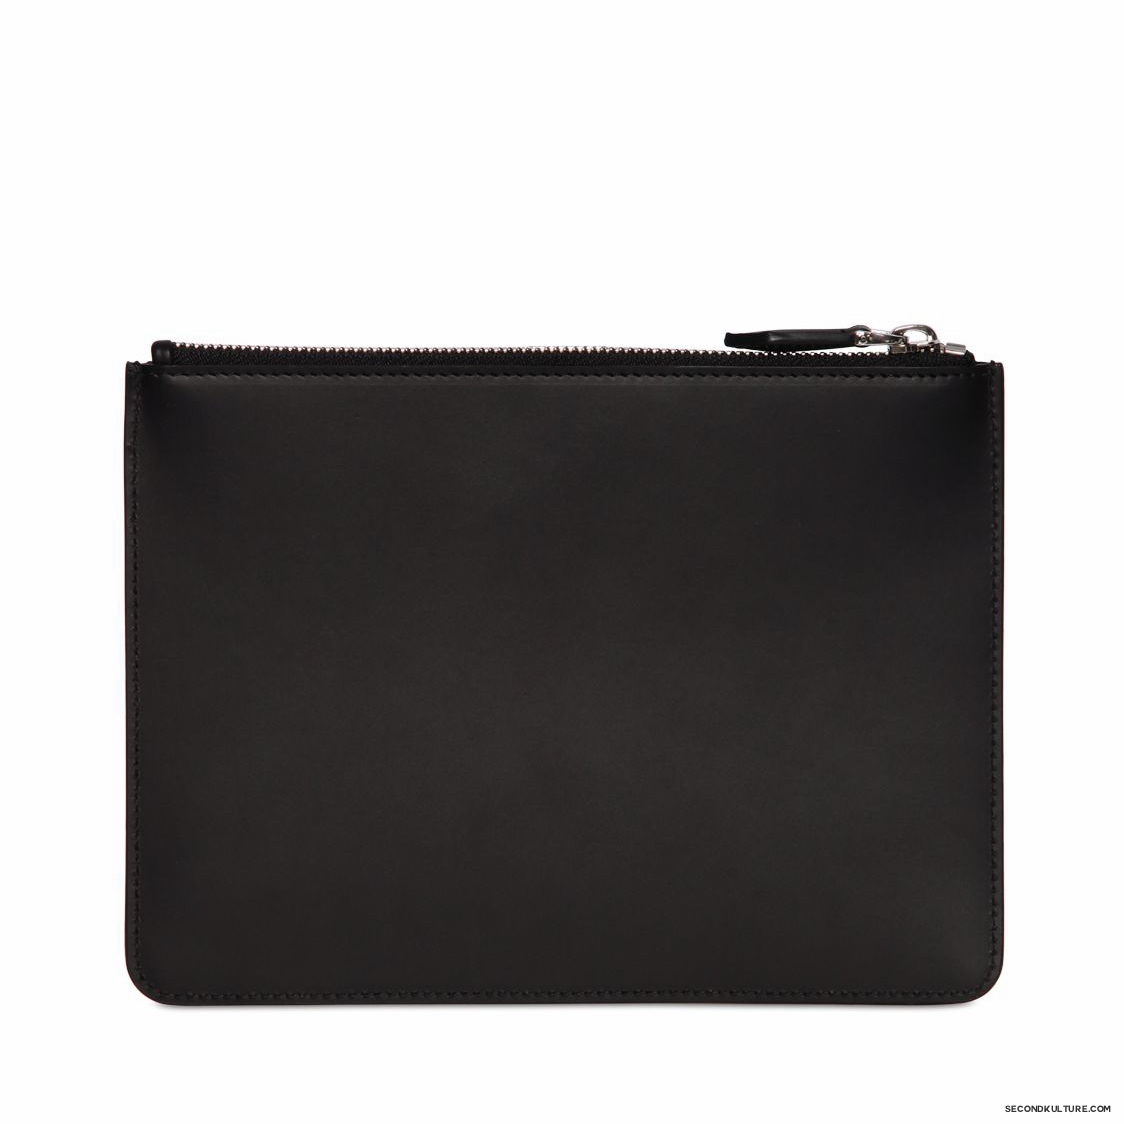 Givenchy-Black-Love-Embossed-Small-Zipped-Leather-Pouch-Fall-Winter-2015-2